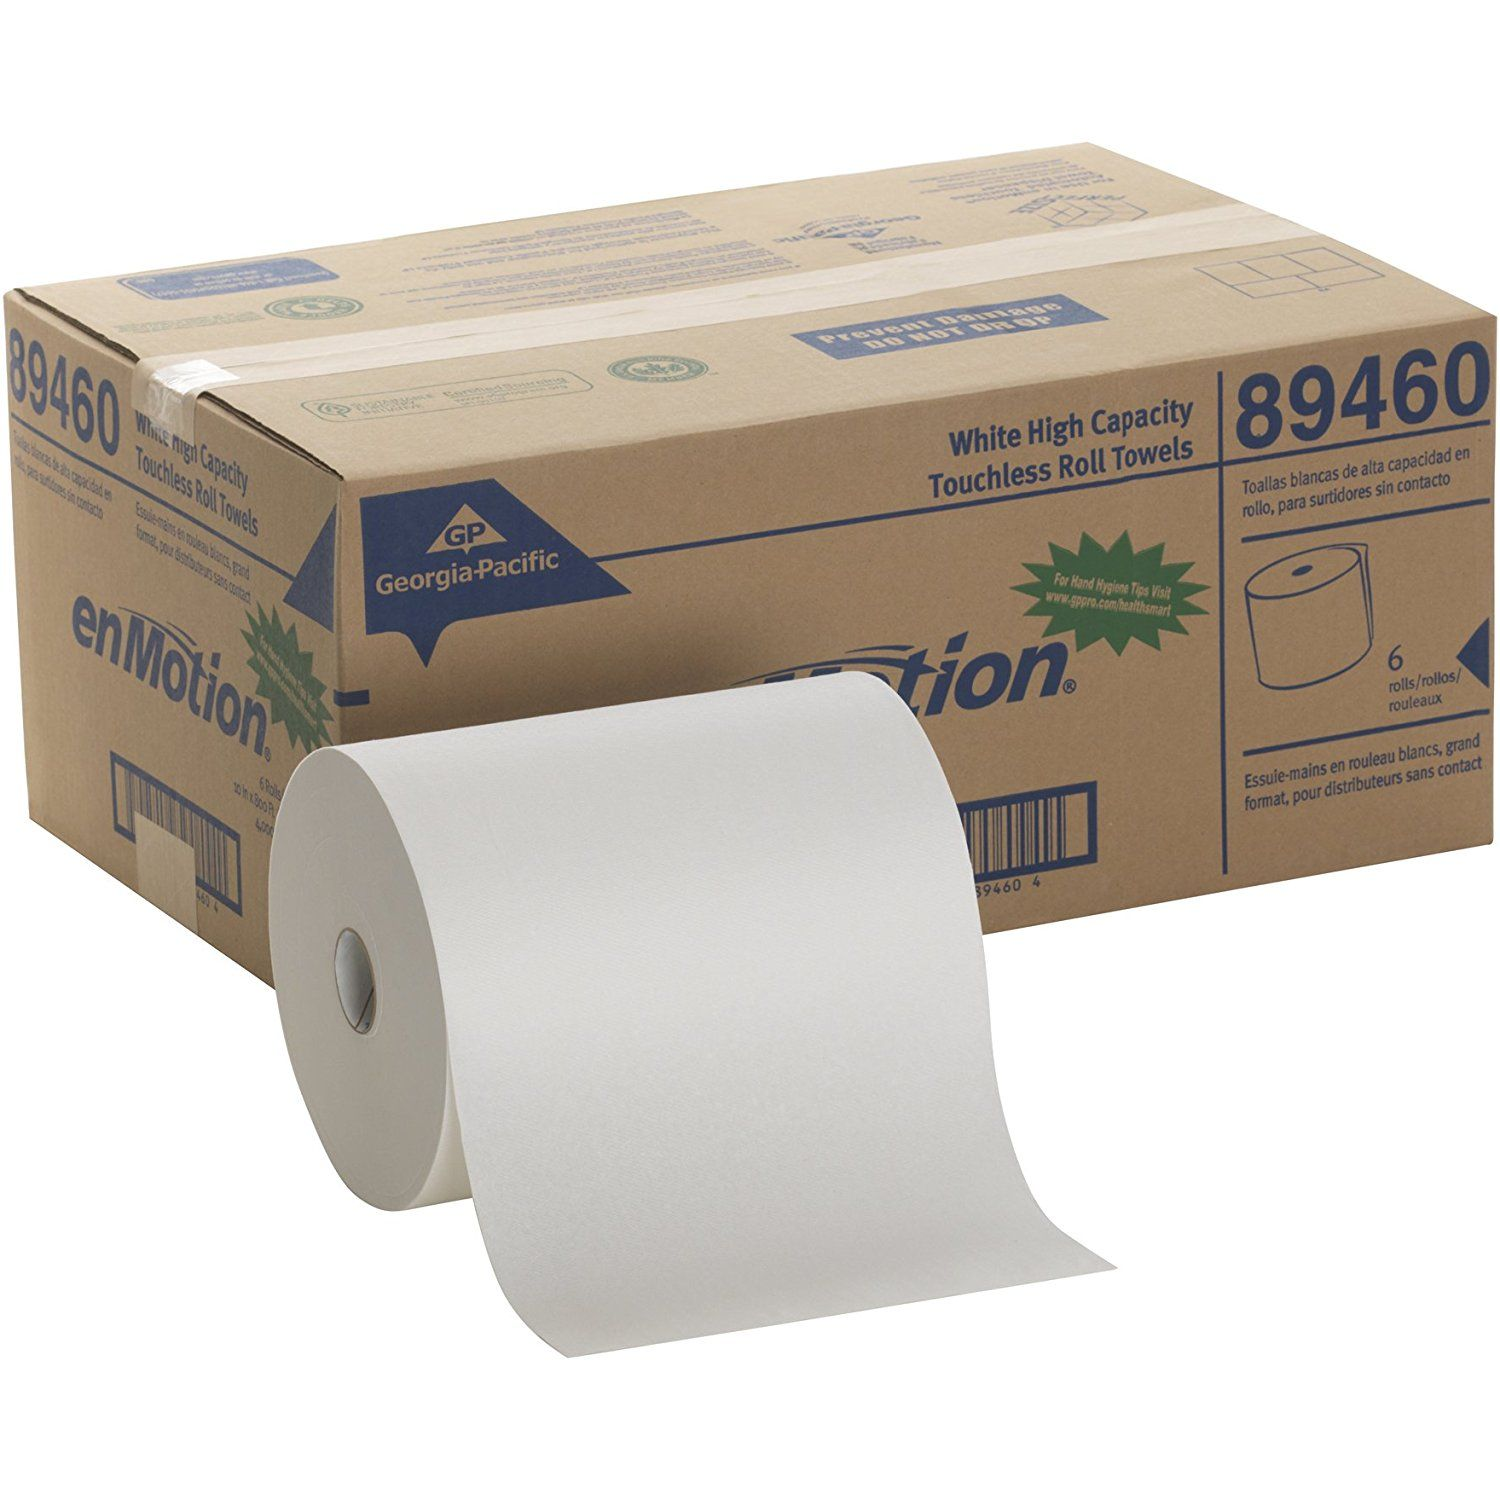 Georgia Pacific Enmotion 894 60 800 Length X 10 Width White High Capacity Touchless Roll Towel Roll Of How To Roll Towels Georgia Pacific Paper Towel Rolls